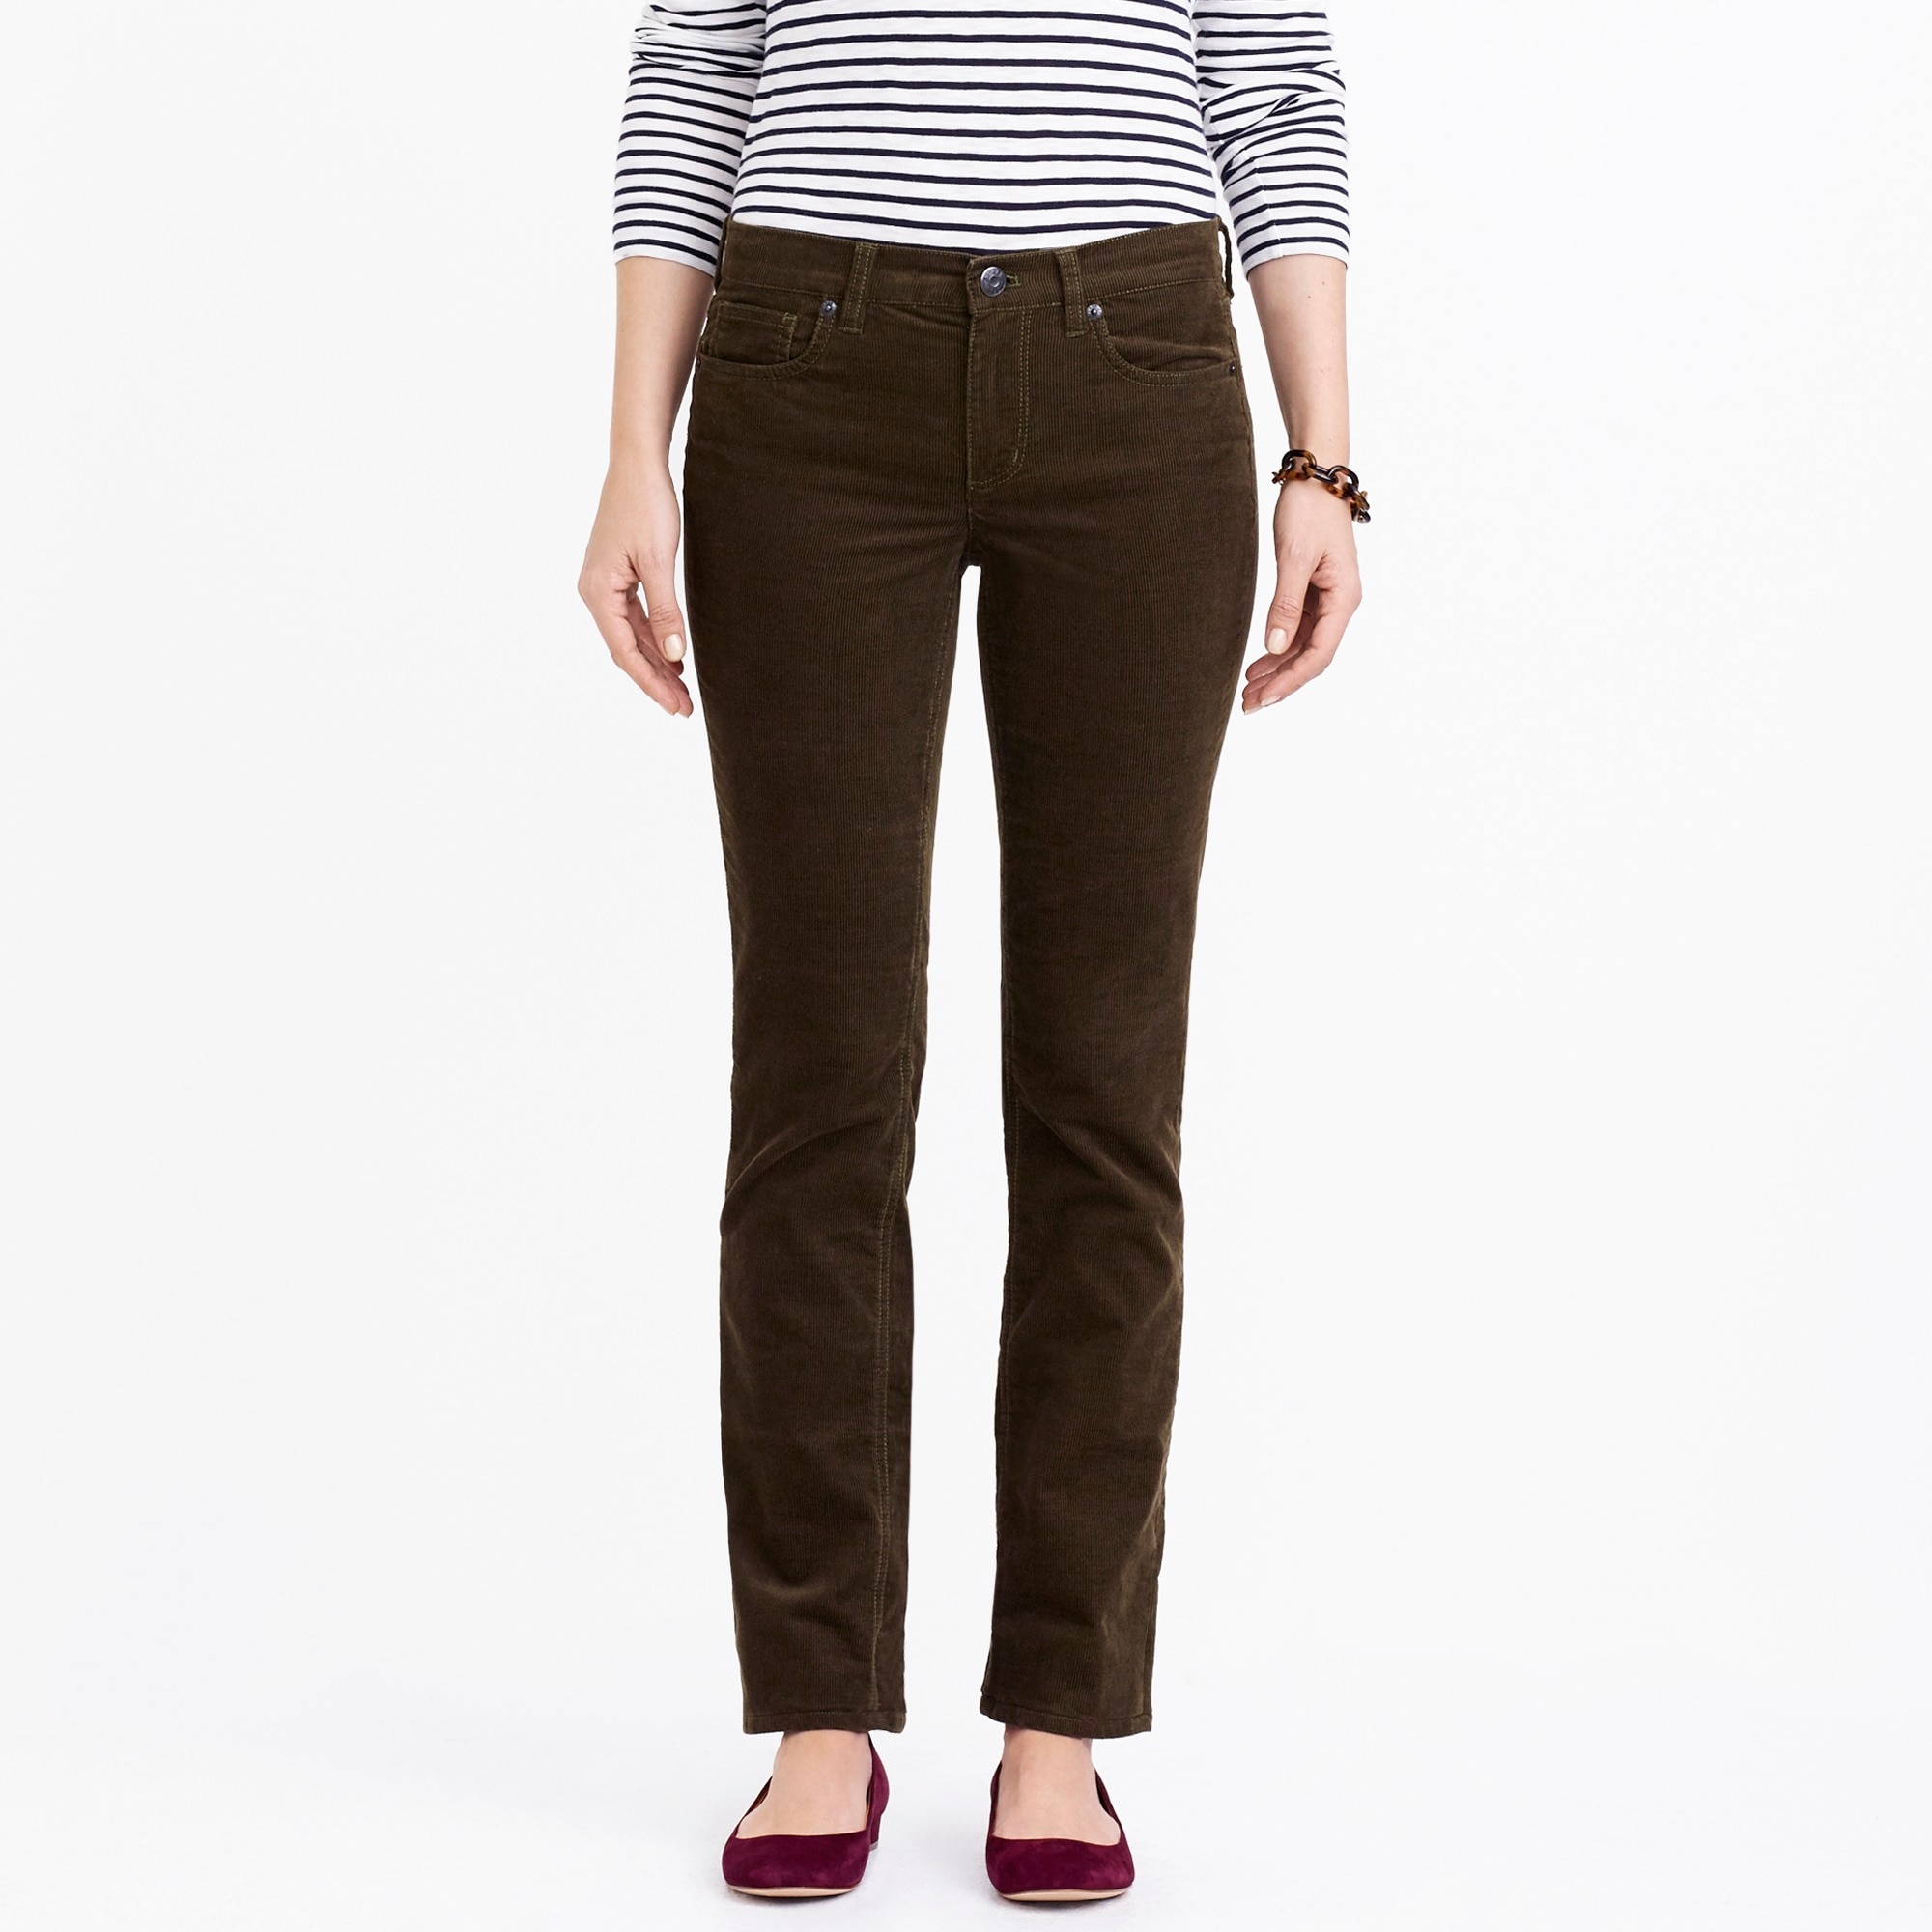 straight and narrow cord - women's pants